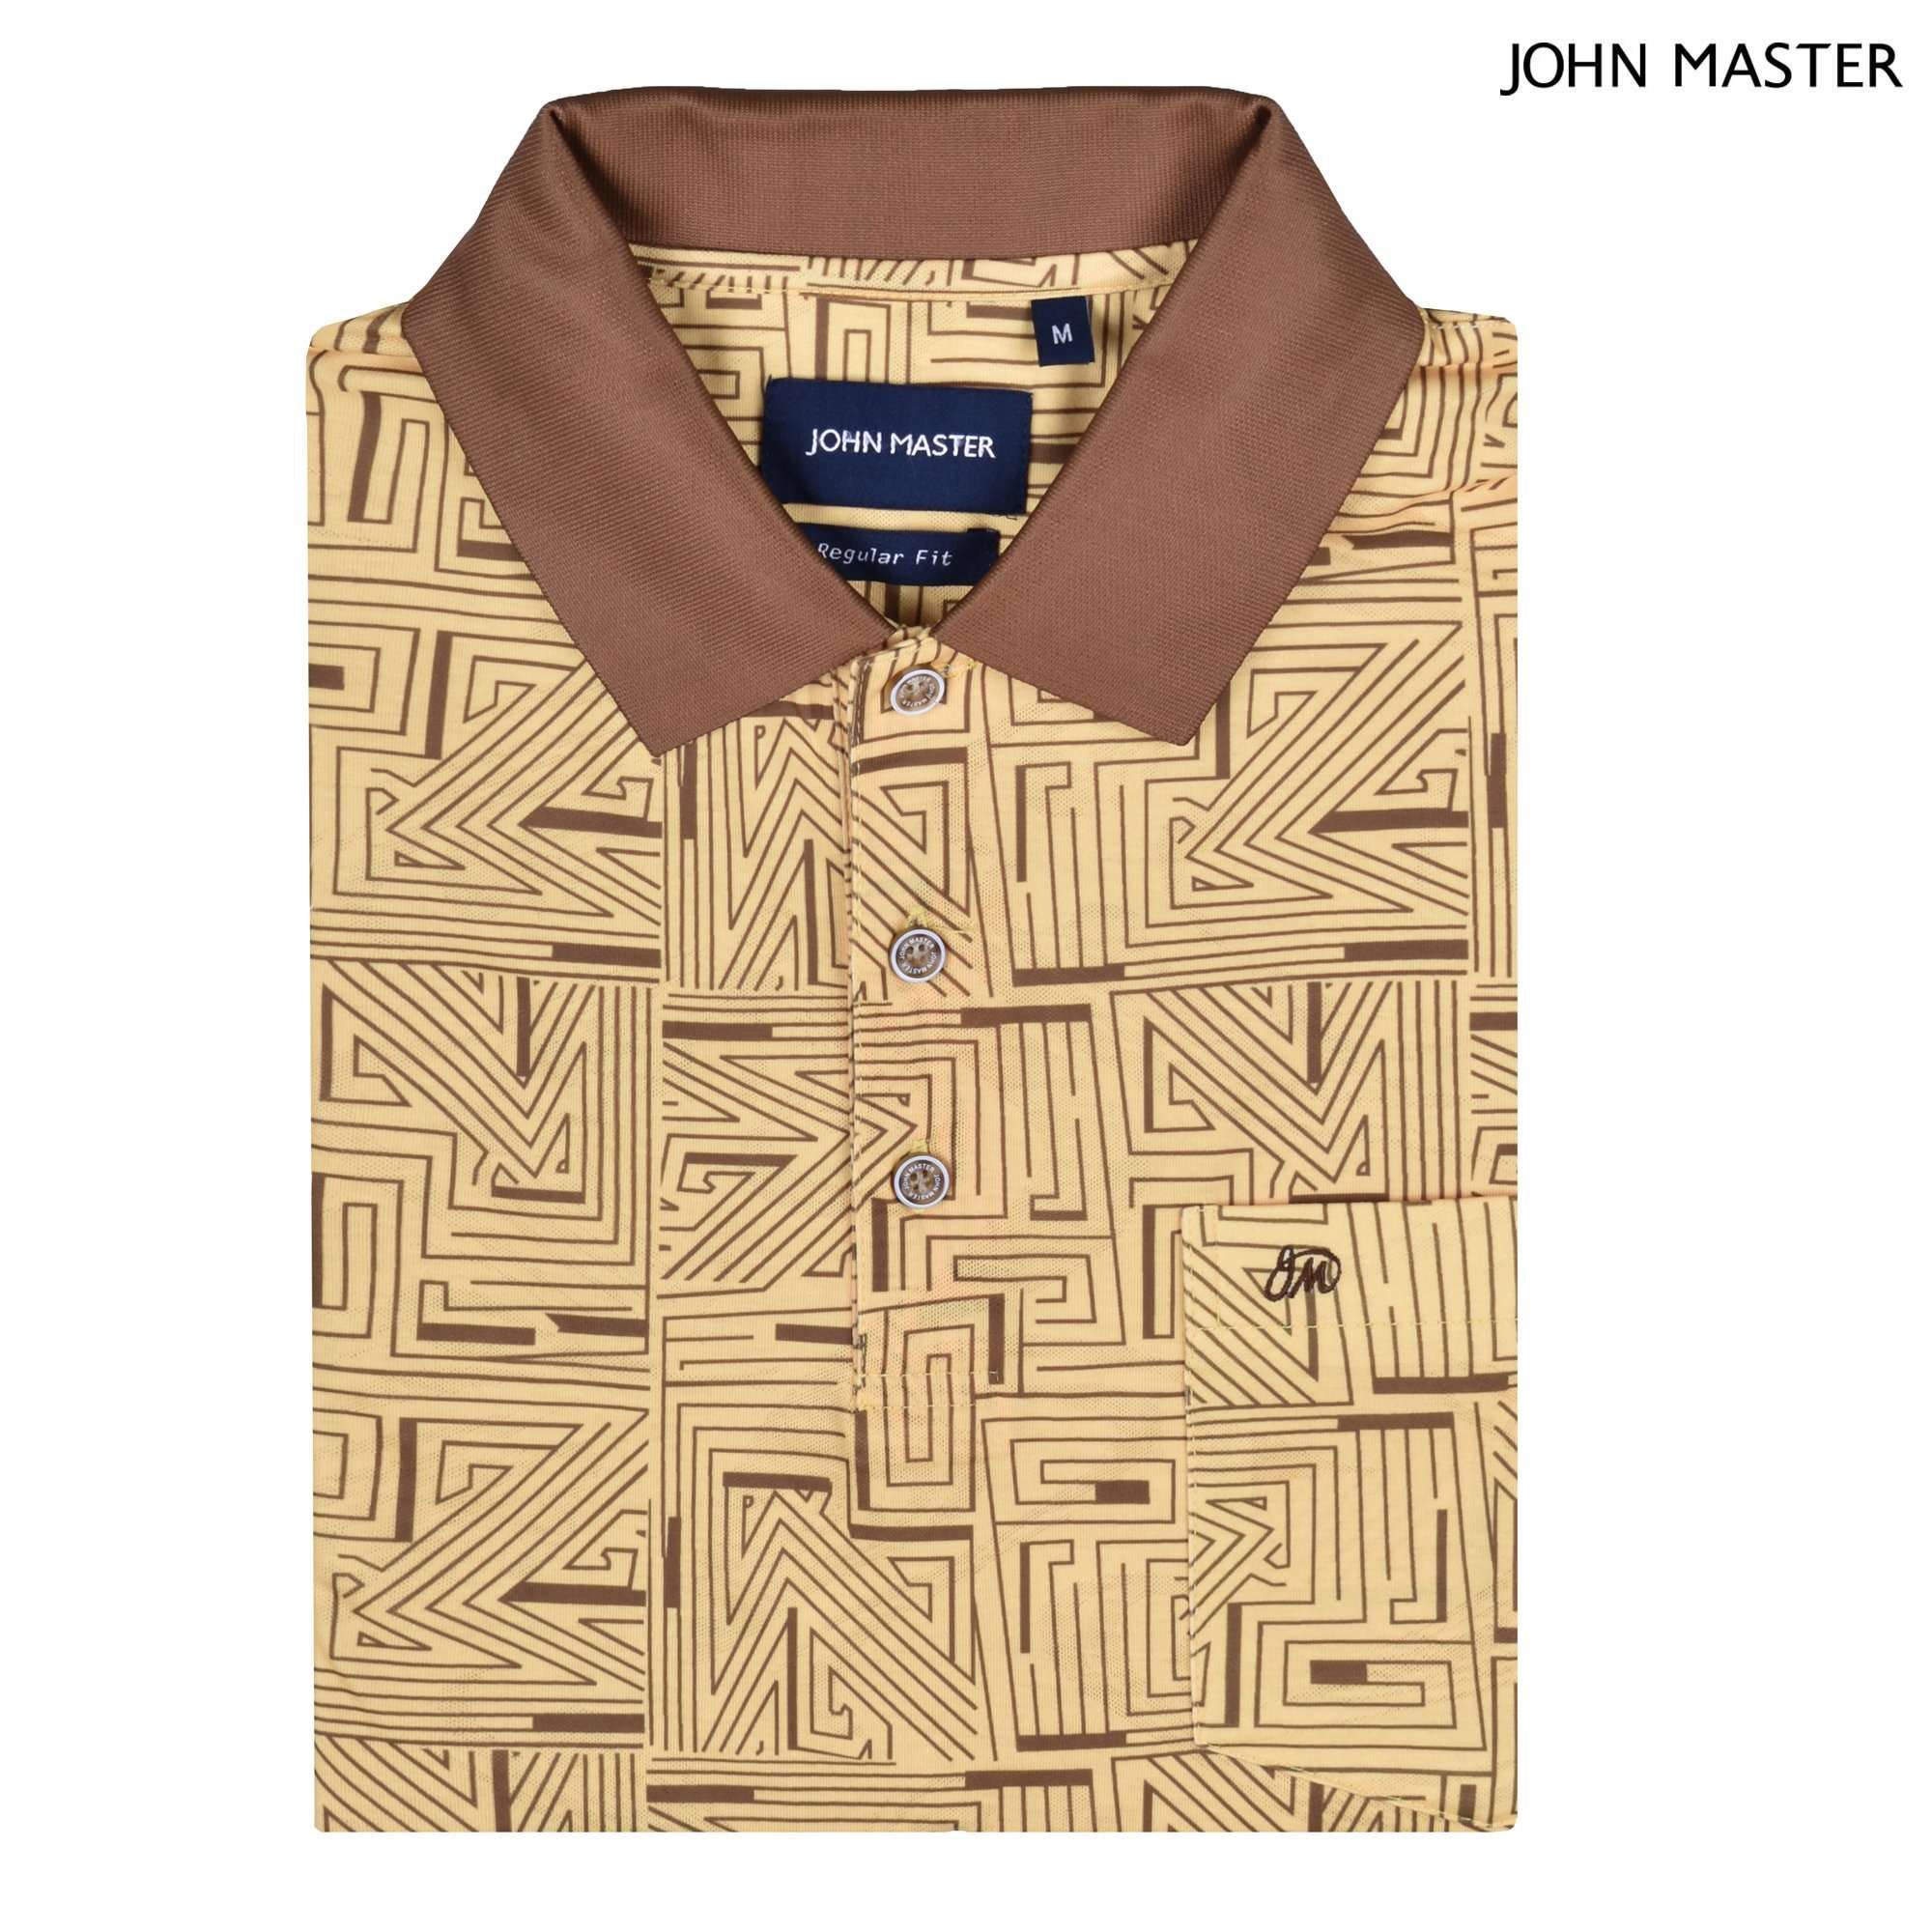 John Master Regular Fit Short Sleeve Polo Tee Yellow 8068002-Y6 : Buy John Master online at CMG.MY